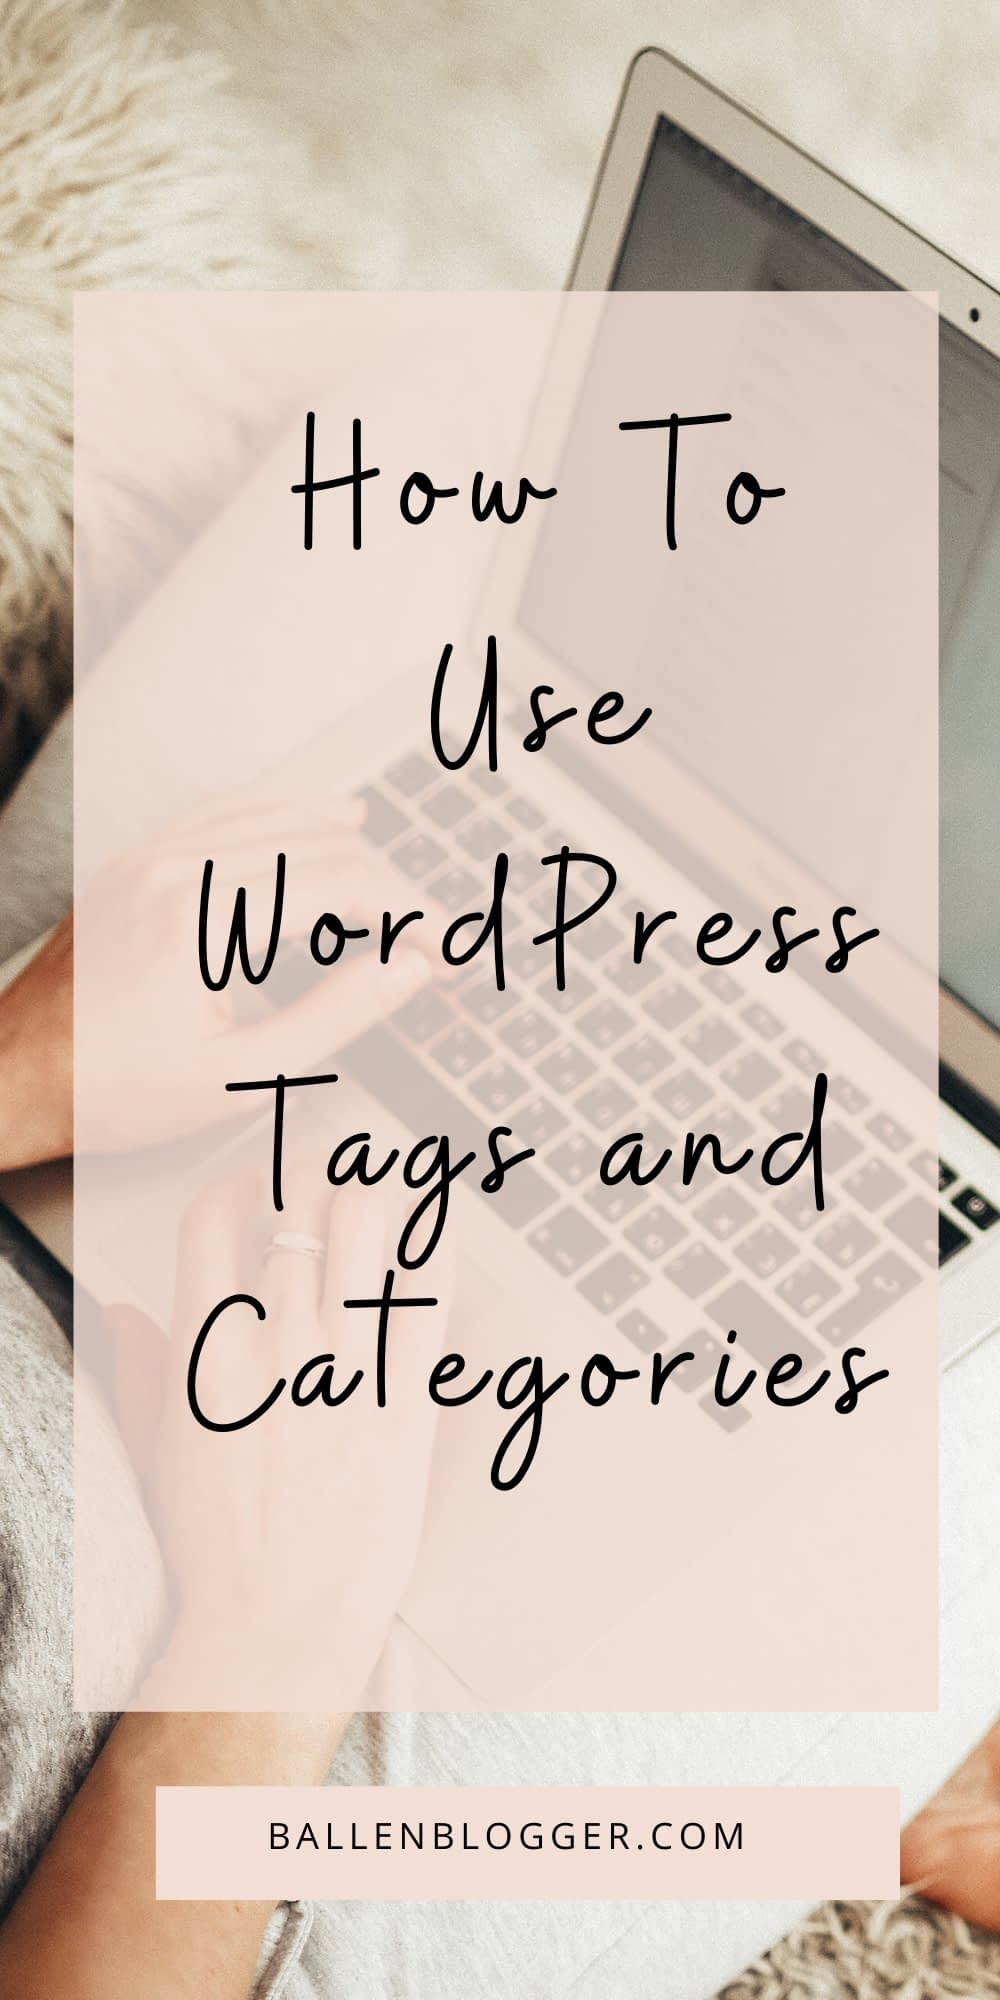 For every category and tag used on your website, WordPress will automatically create a new page containing all posts to which the category has been assigned or the tag added.